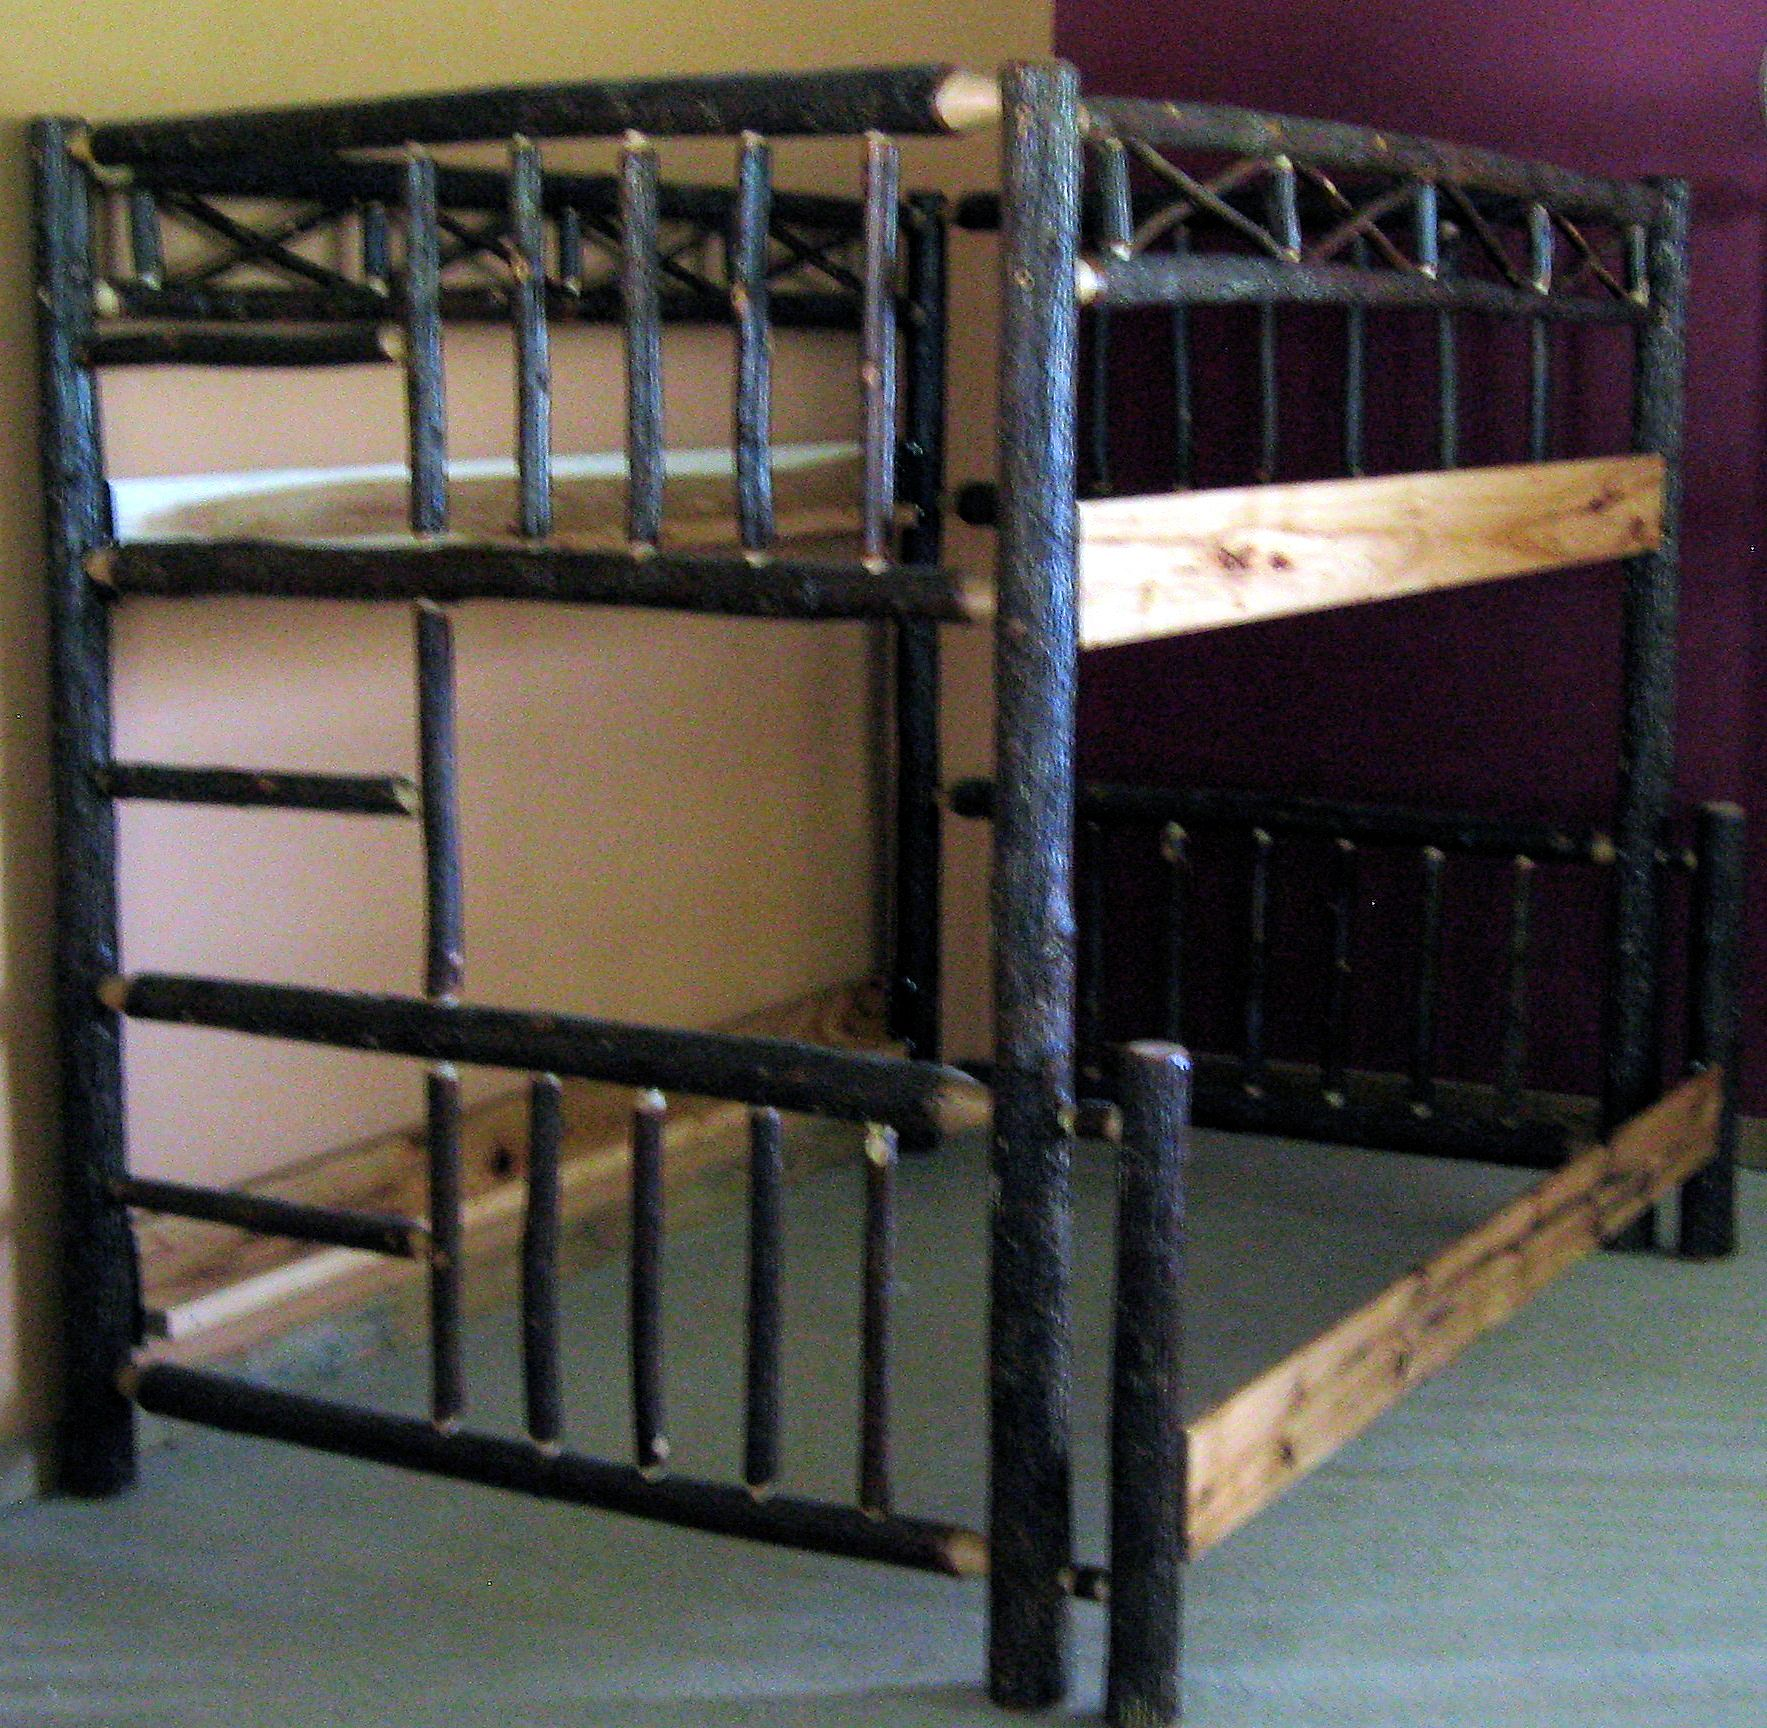 hickory-log-bunk-4.jpg